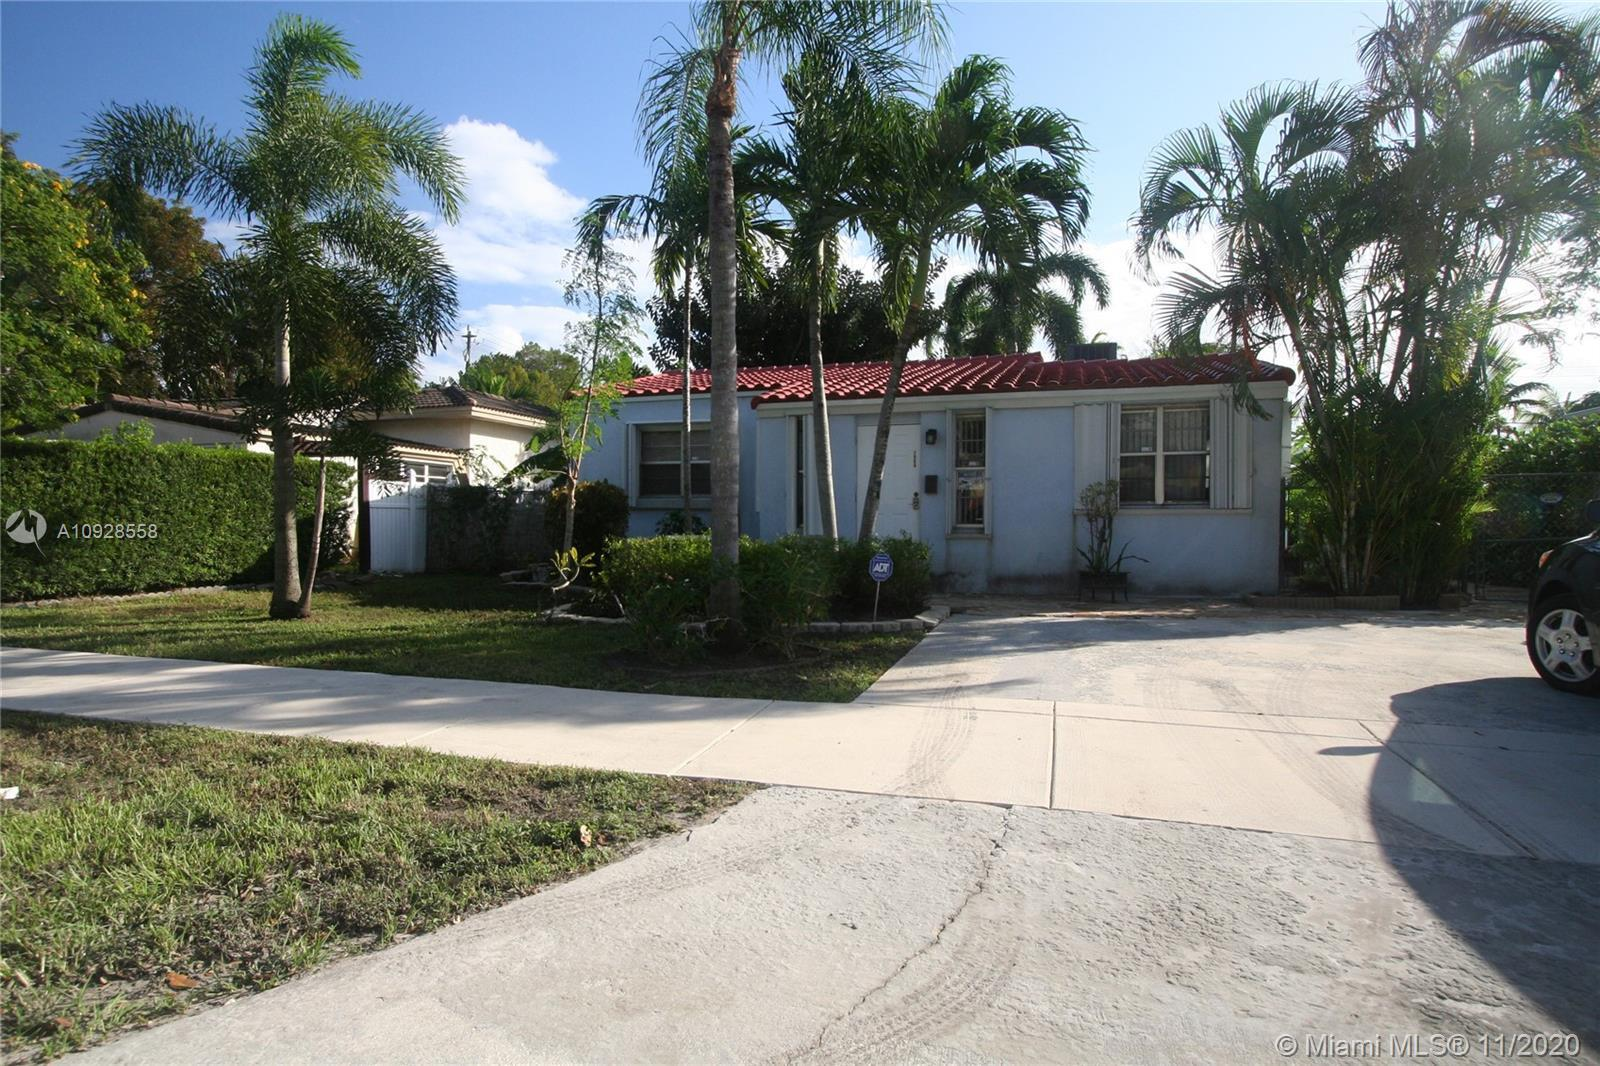 Enjoy the outdoors and garden o this Adorable bungalow style pool home with 3 bedrooms with a very r